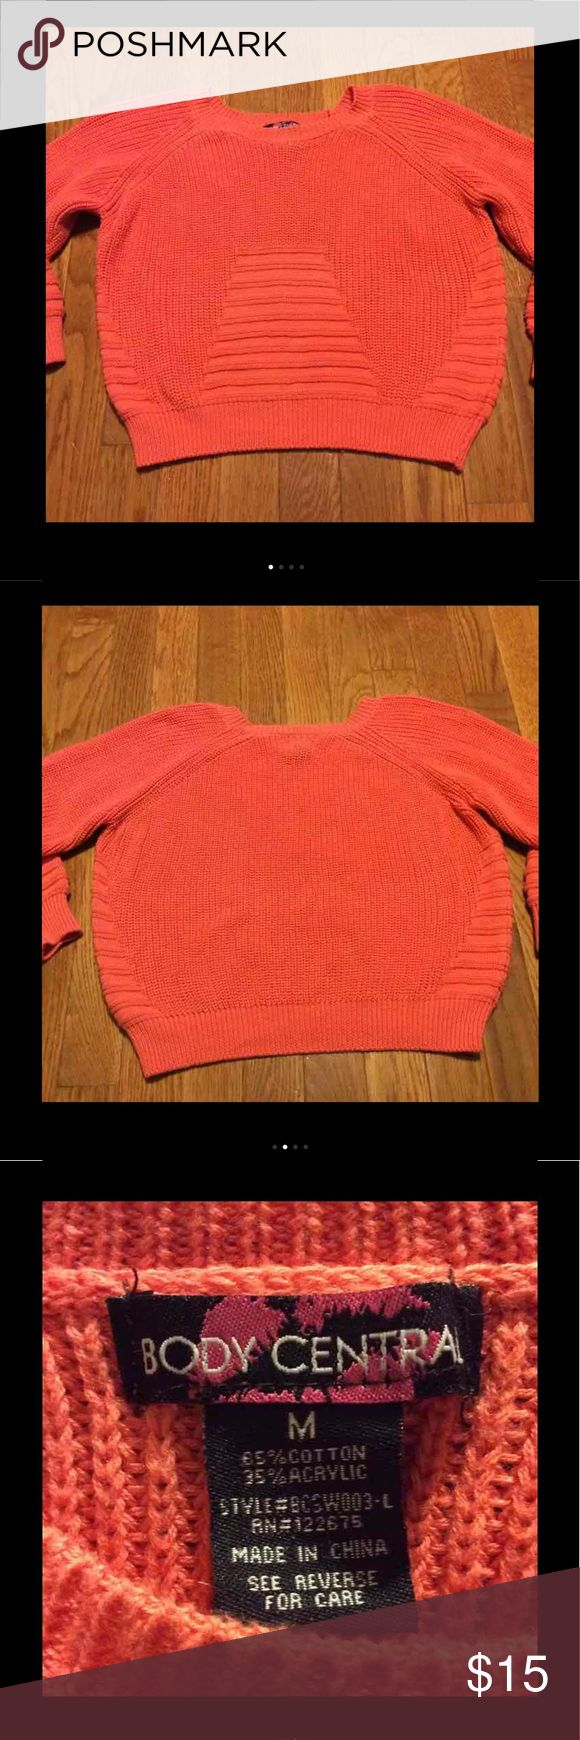 Body Central Cropped Sweater size M Gently used, no stains or tears, ribbing on sleeves matches front & side pattern Body Central Sweaters Crew & Scoop Necks